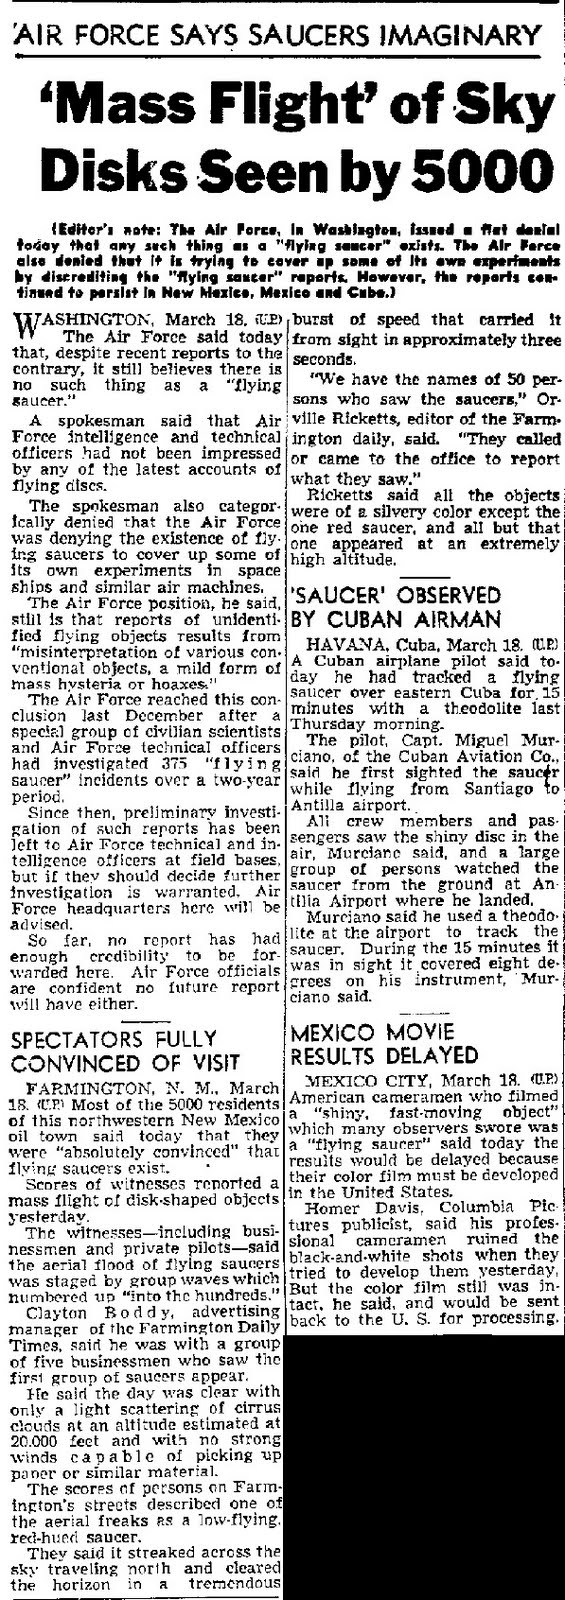 'Mass Flight' of Sky Disks Seen by 5000 - Long Beach Press-Telegram 3-18-1950